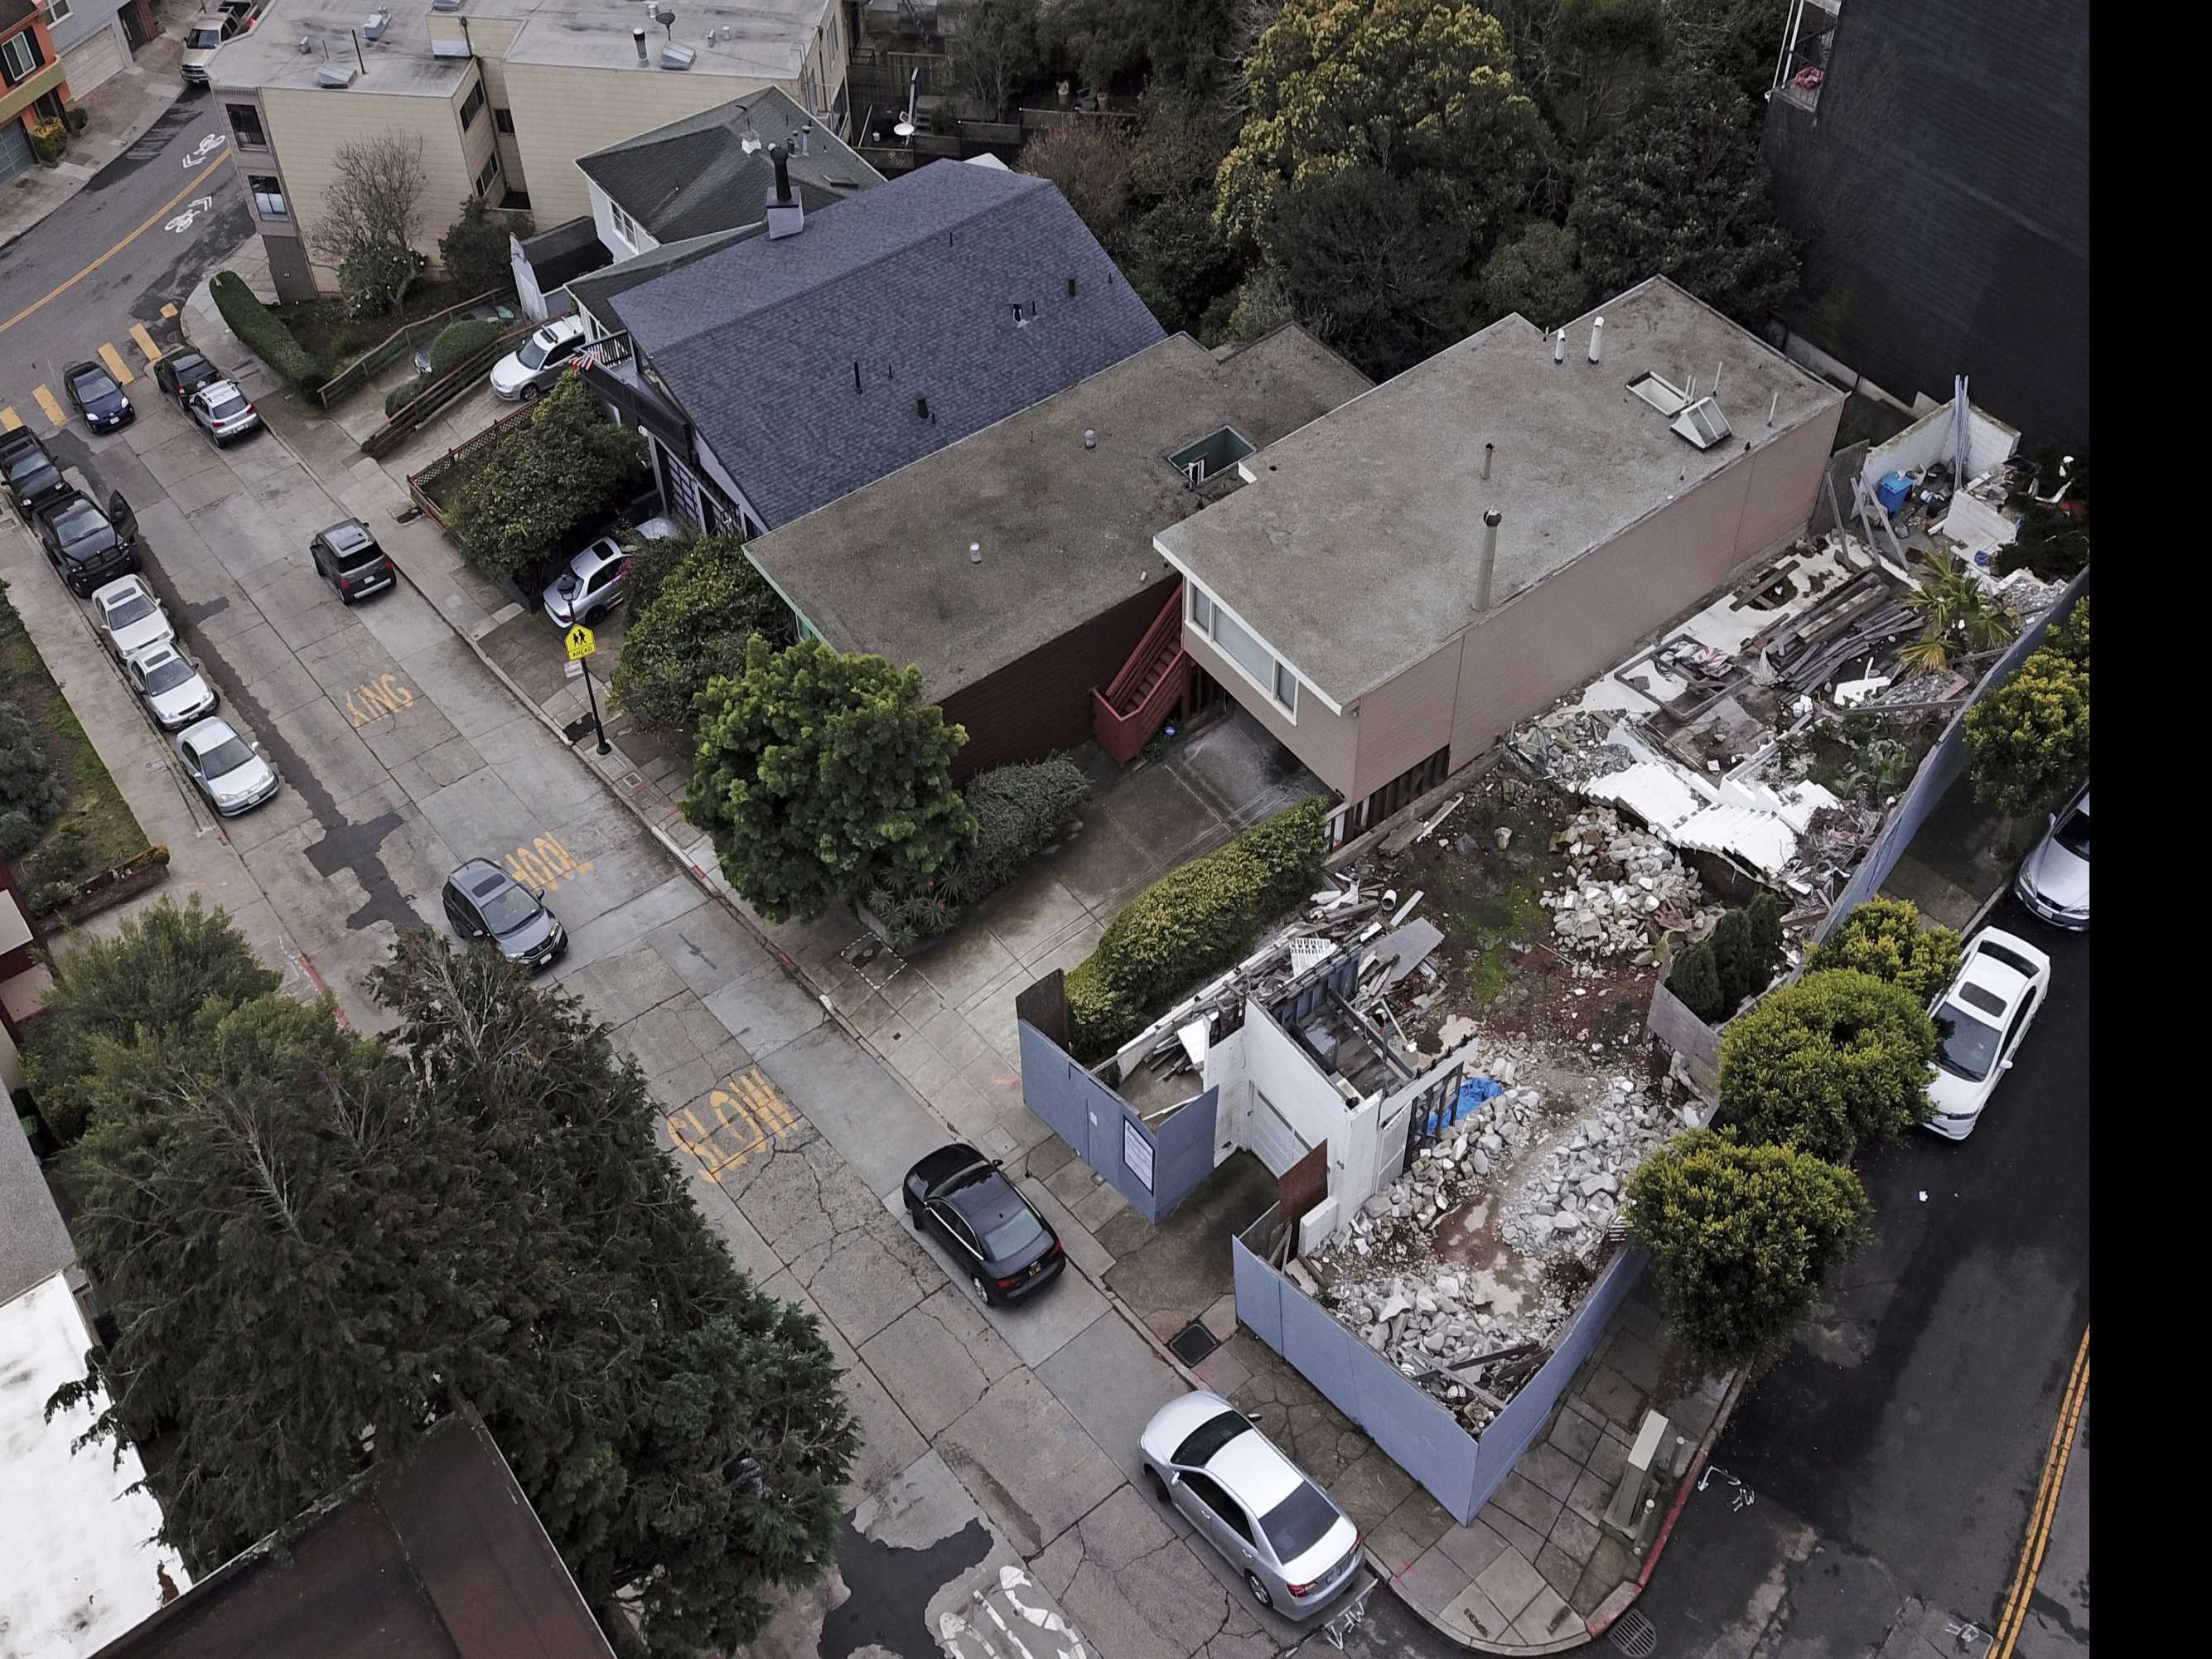 Man who Demolished Landmark House Ordered to Build Replica